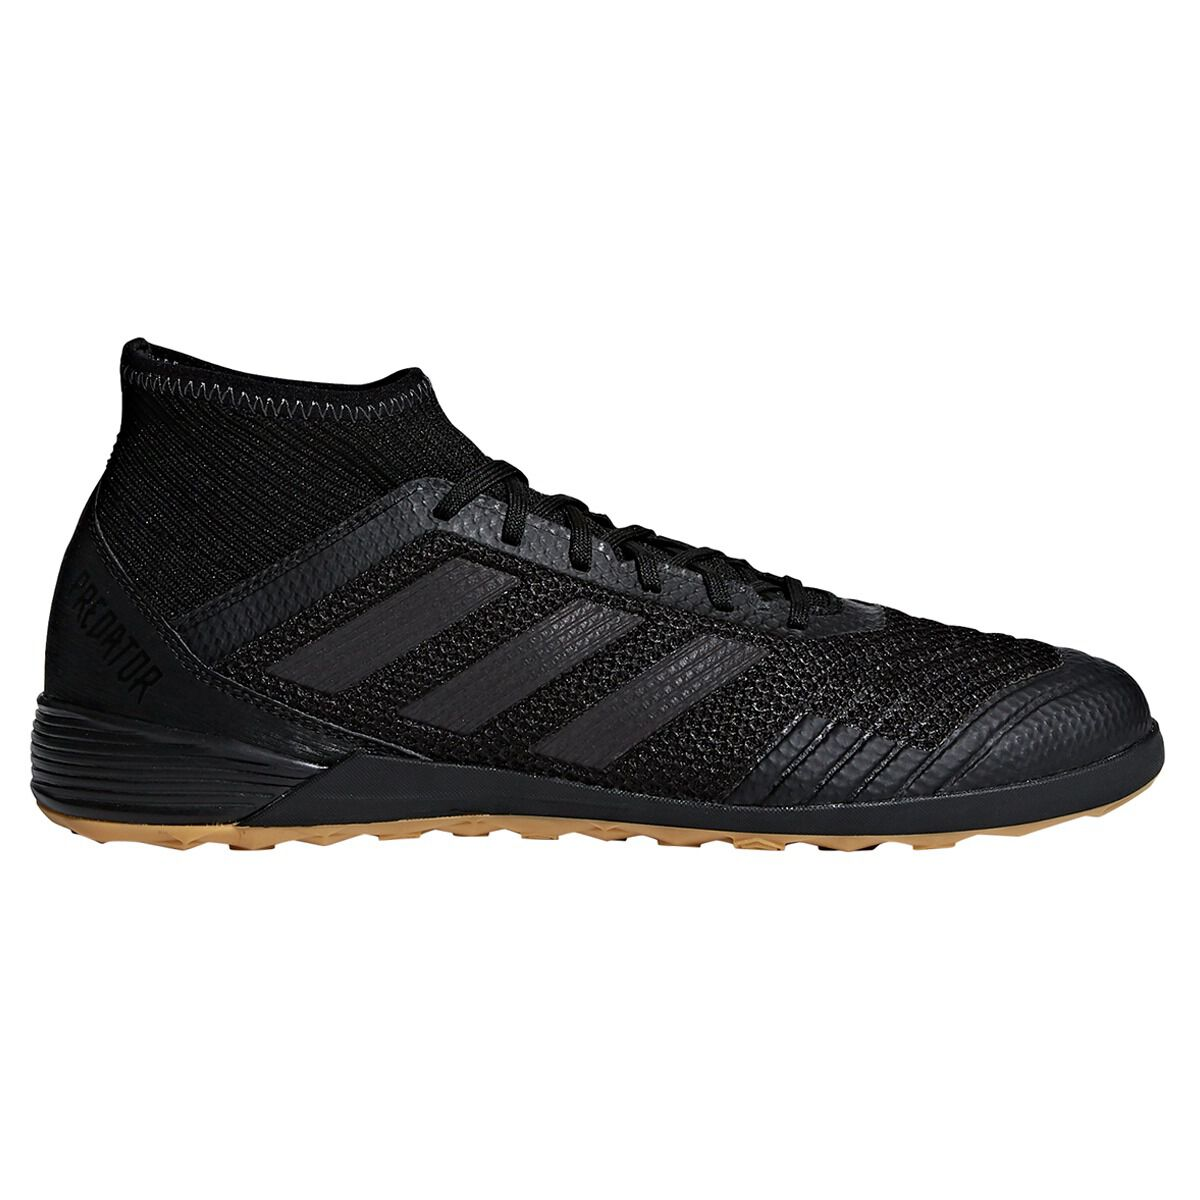 official photos cheap prices to buy australia adidas prougeator 10.5 13bc8 c491e